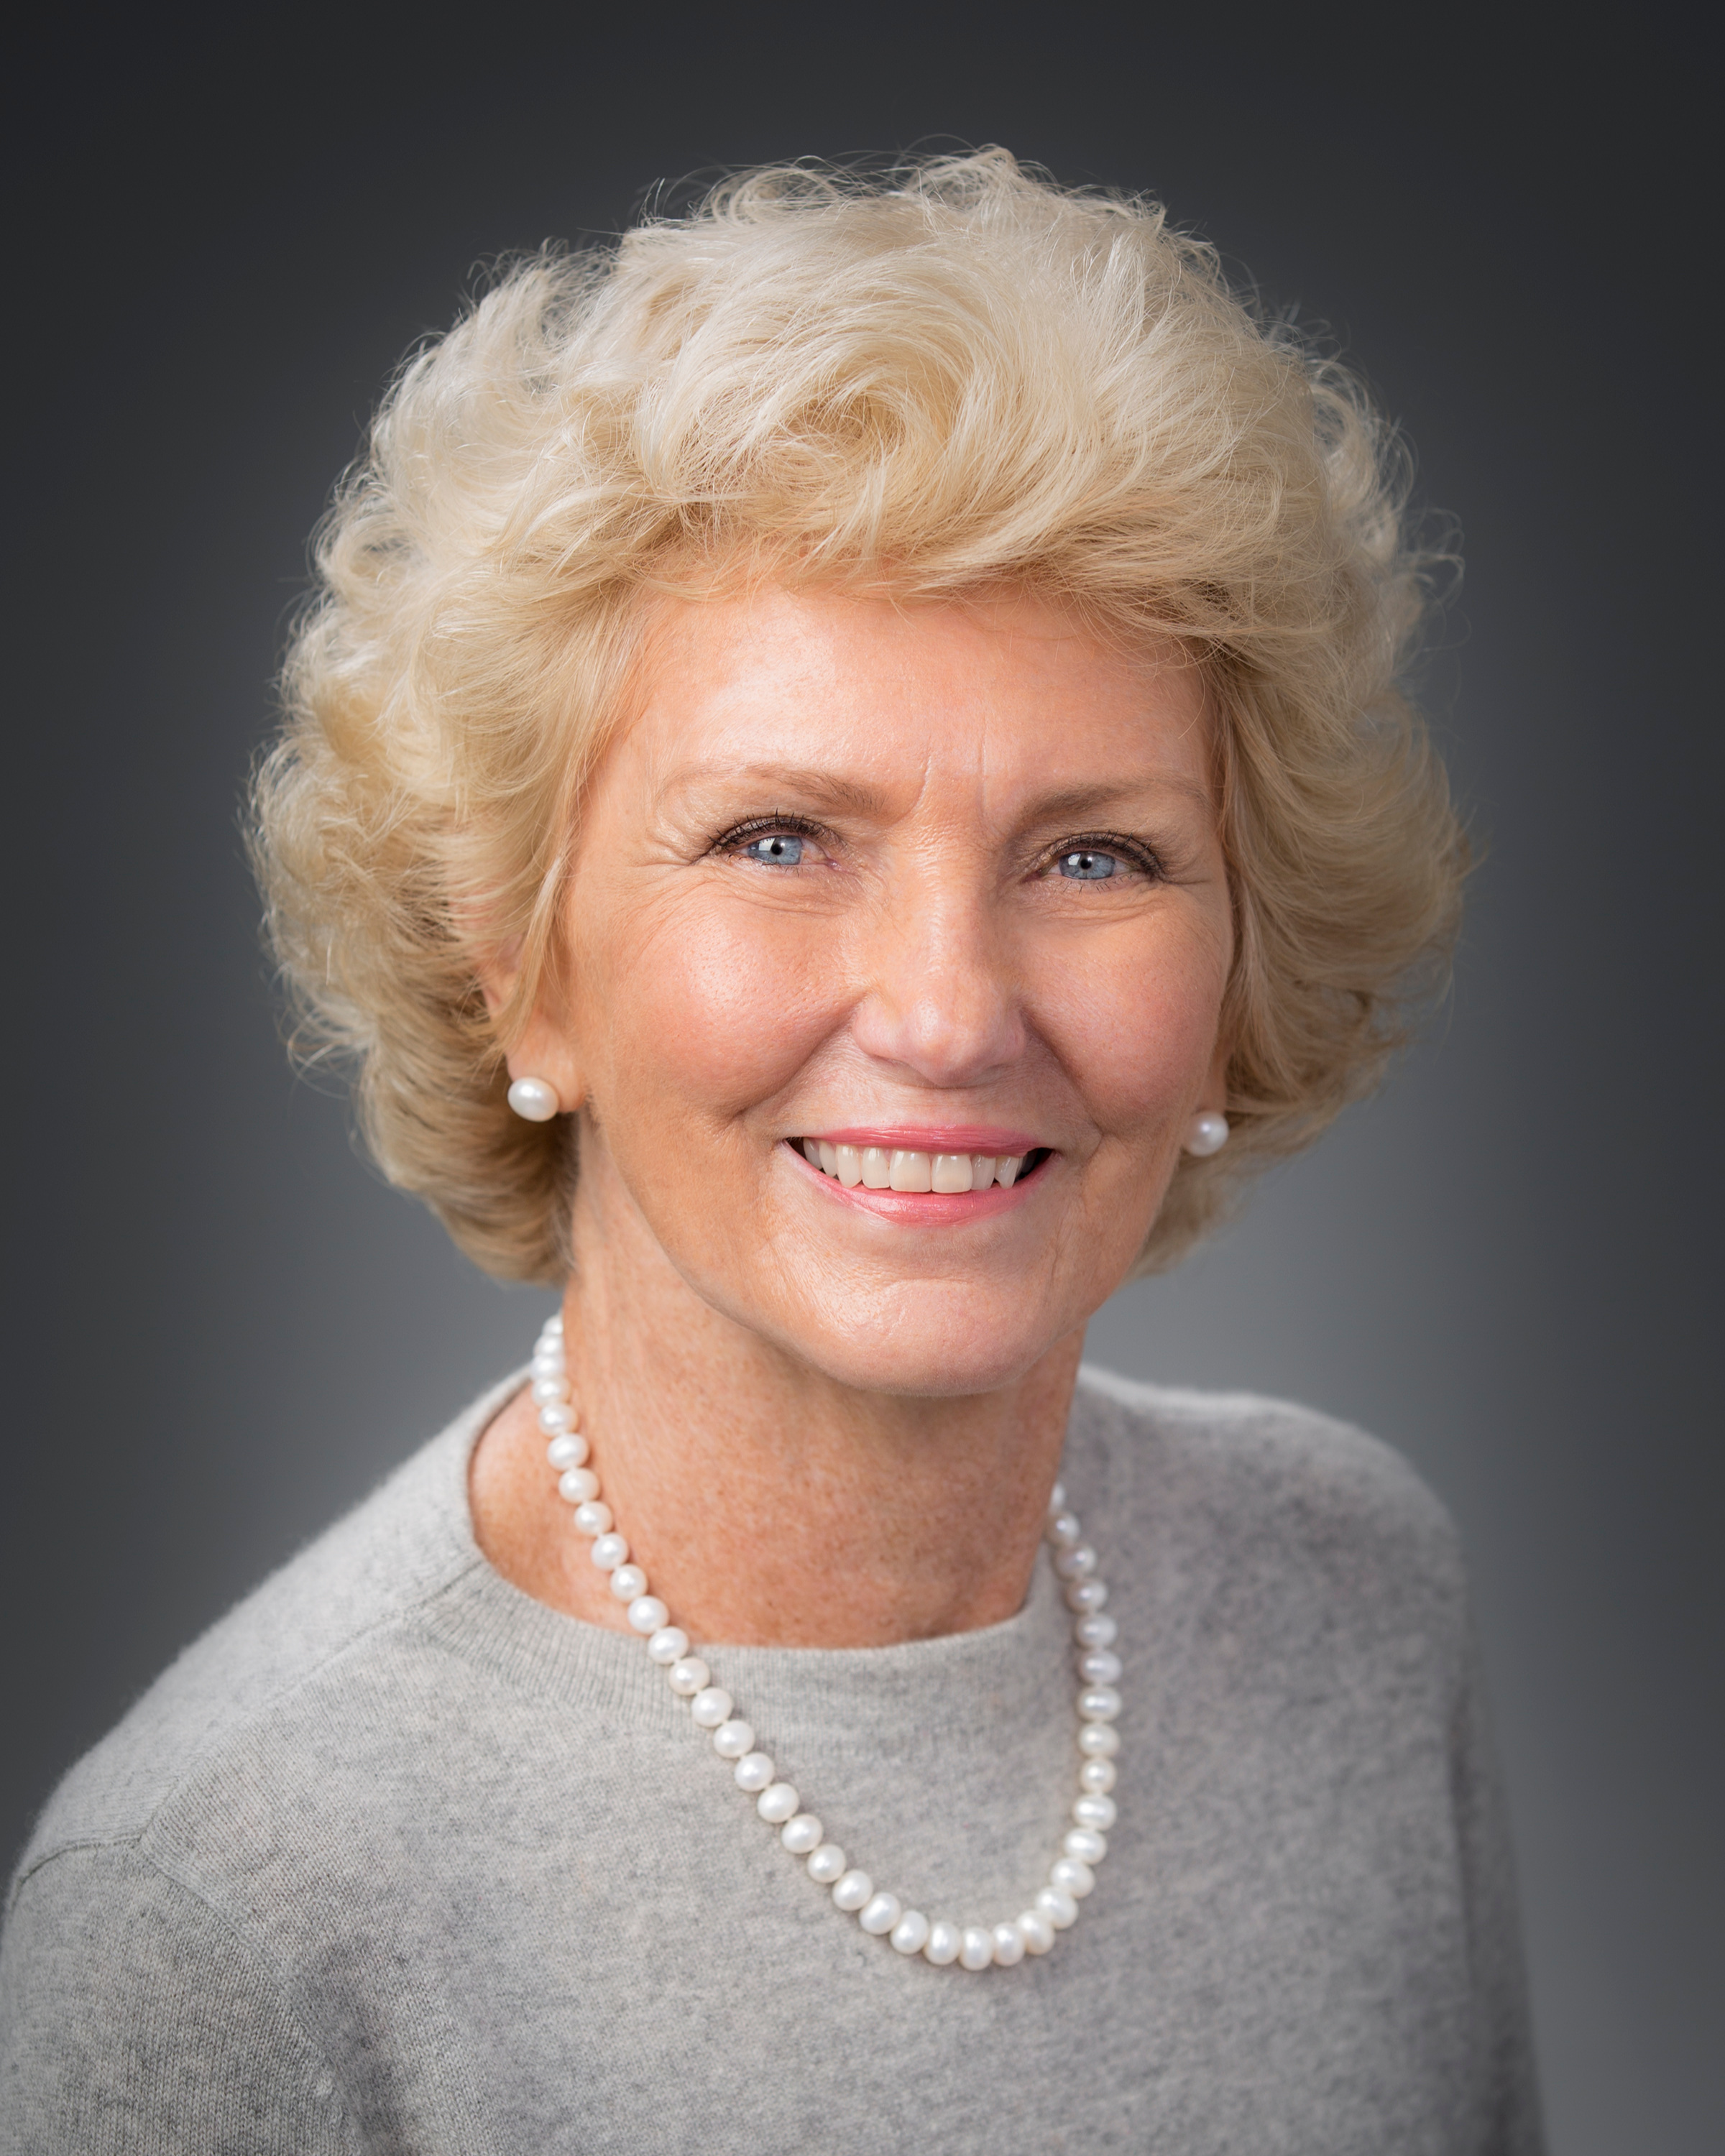 The Center for Balanced Living Announces New CEO - Columbus---May 29, 2019The Center for Balanced Living is excited to announce that our Board of Directors has appointed Cheryl (Cheri) Ryland, LISW-S as its new President and CEO effective May 29, 2019. Cheri was one of the founders of The Center and has served...CLICK HERE TO READ MORE